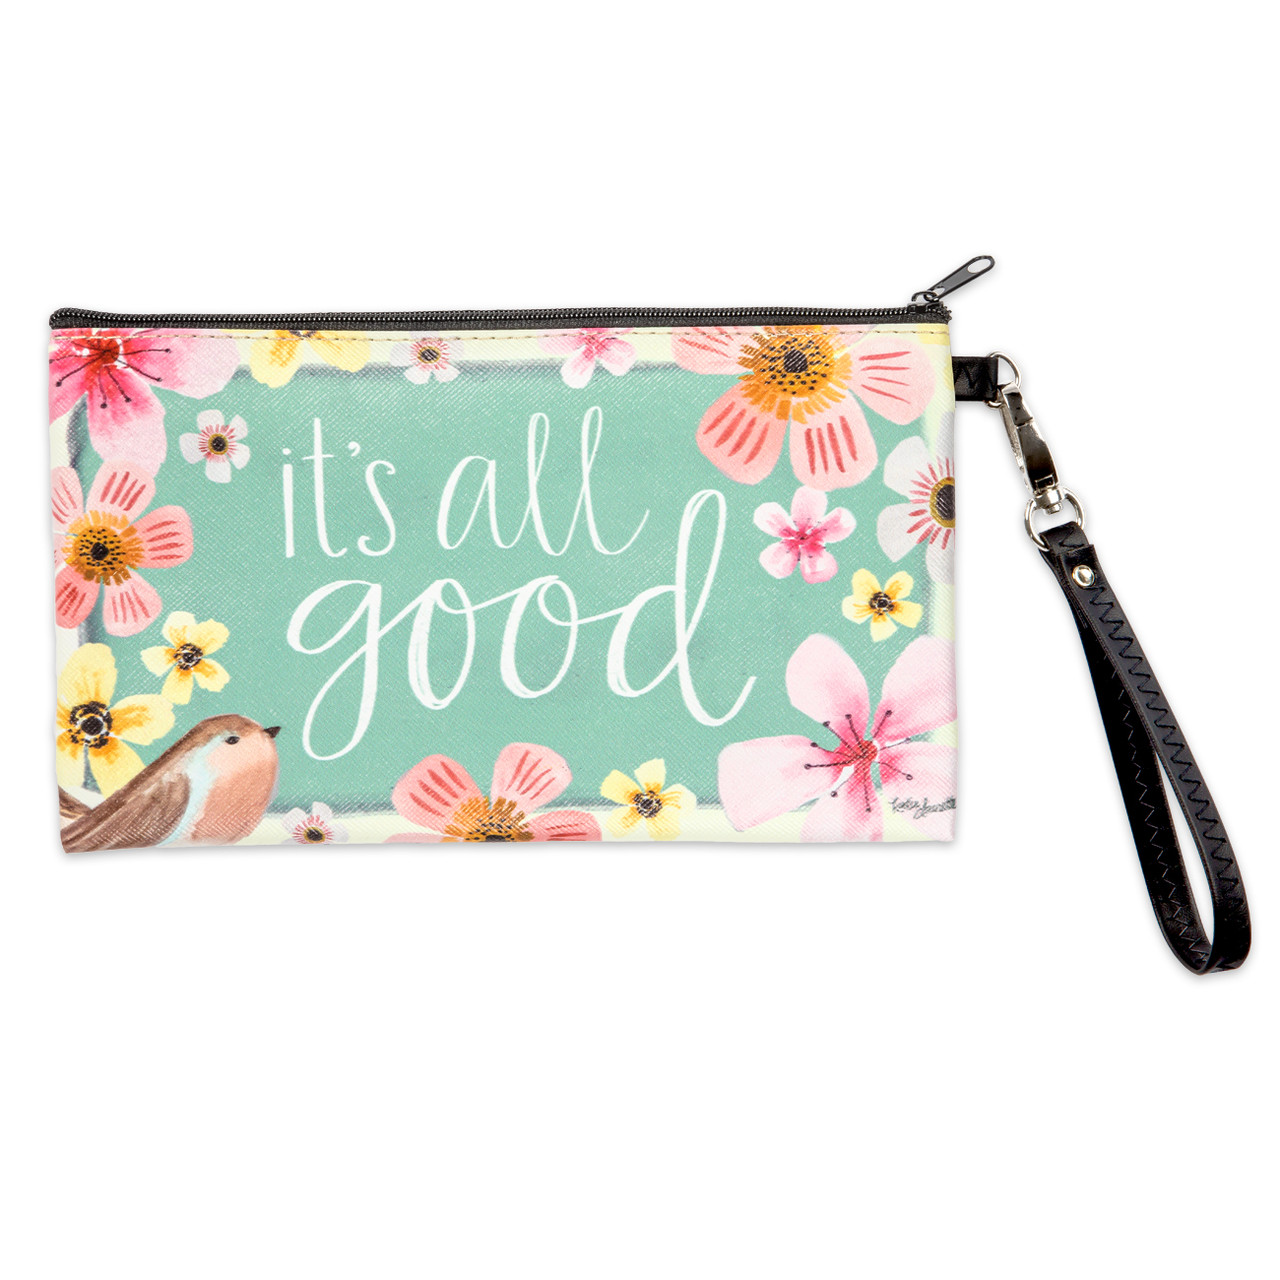 It's all good zippered ouch wristlet inspirational gift